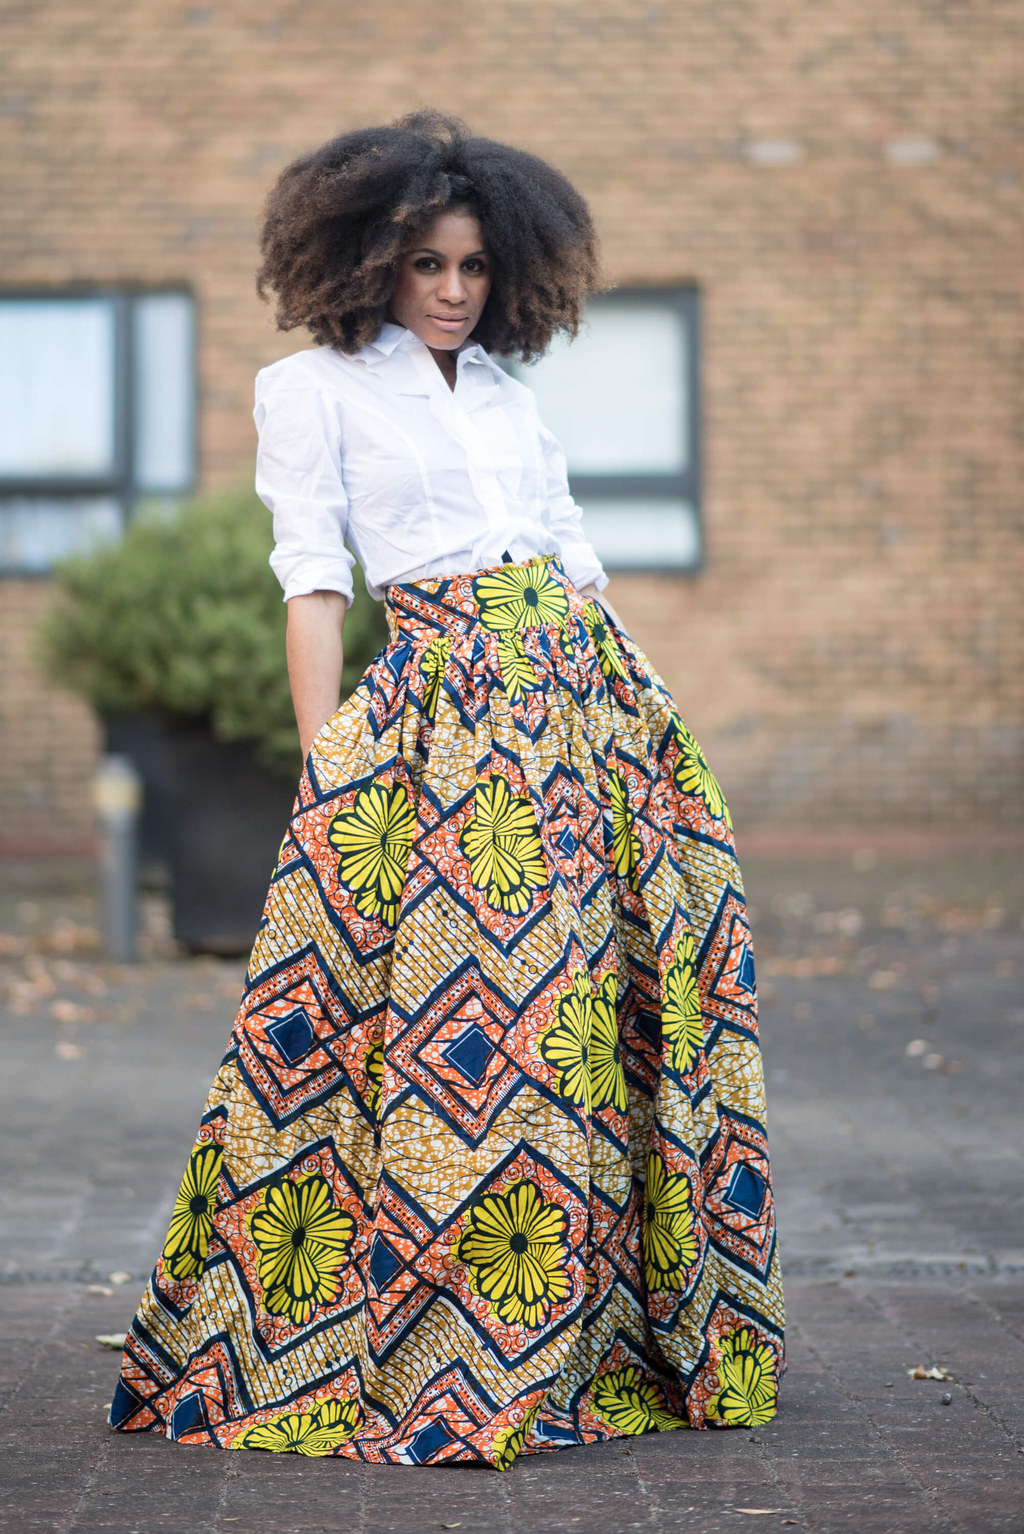 South African Skirts Fabric Style For 2018 Fashionre